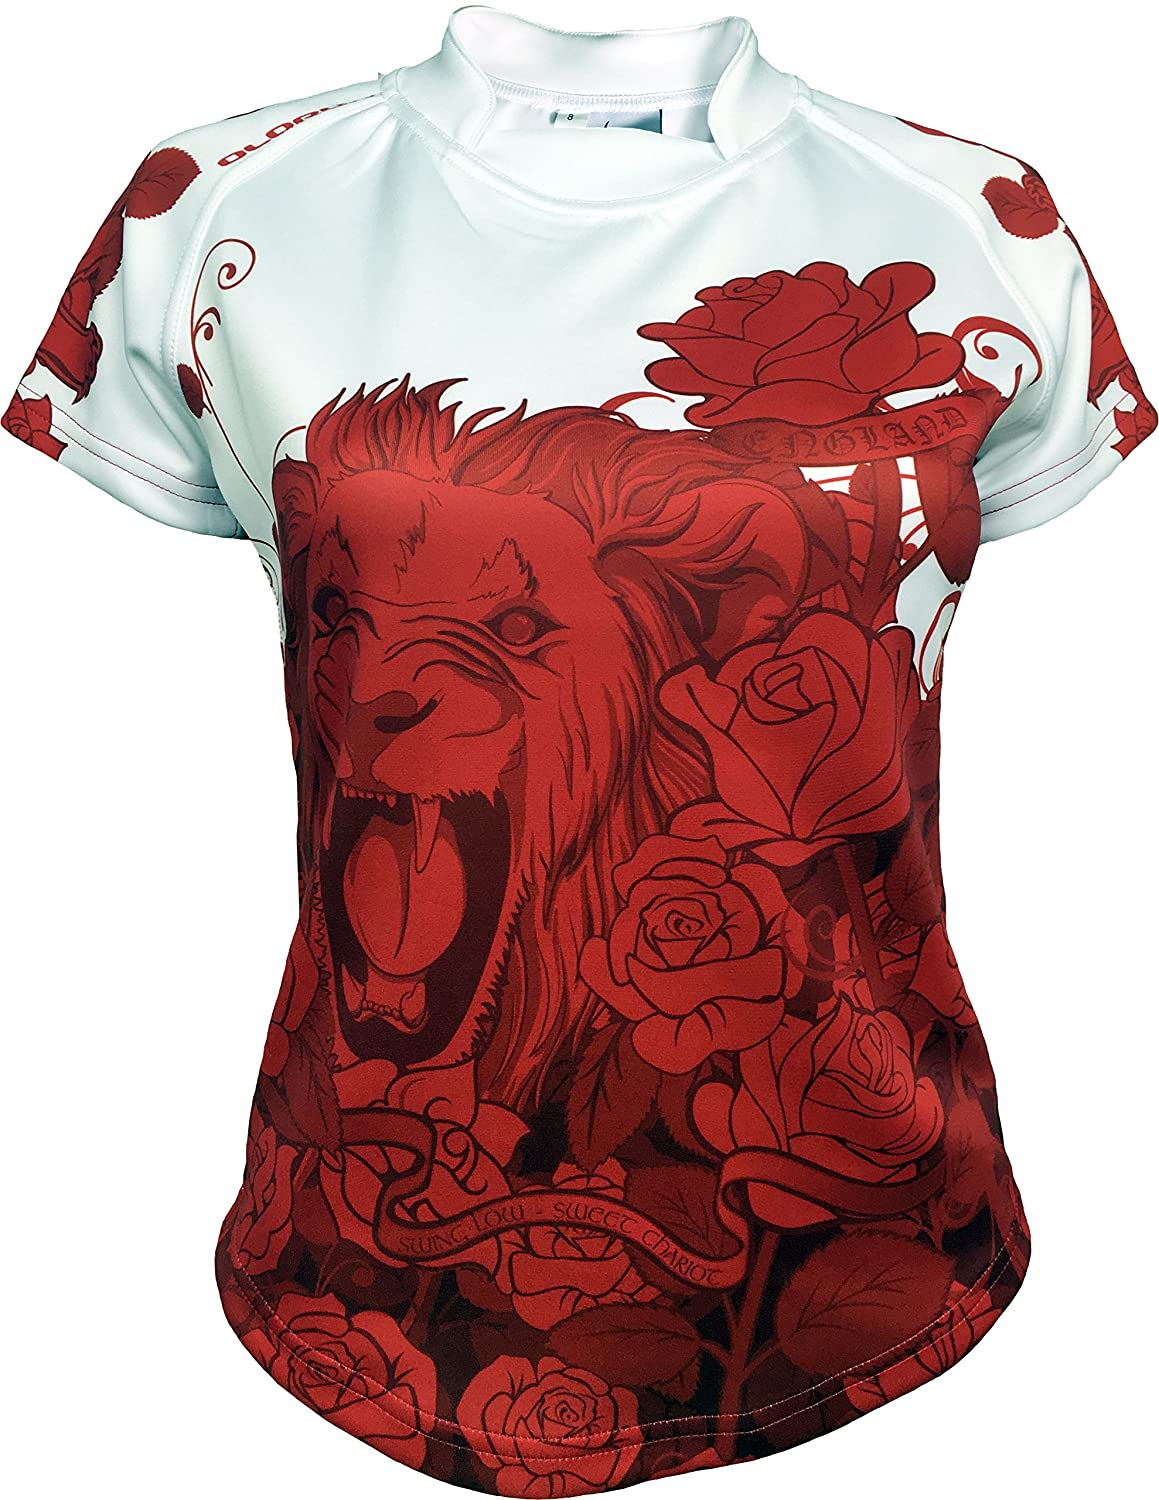 Olorun England Roses Ladies Supporters Exofit Rugby Shirt 08-22 Olorun-Sports